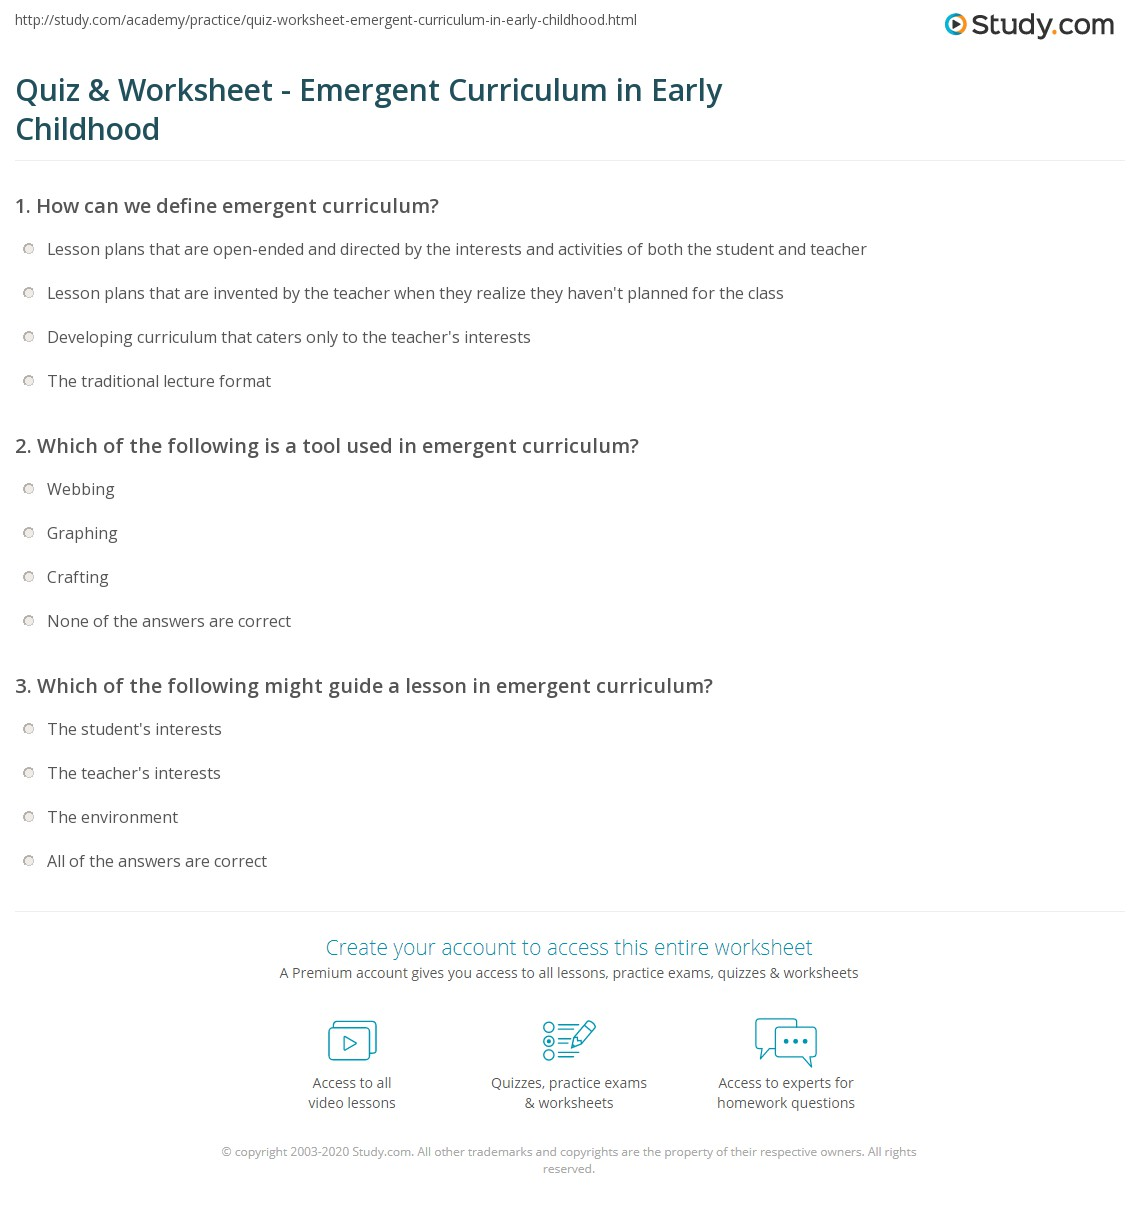 Print What Is Emergent Curriculum In Early Childhood? Worksheet